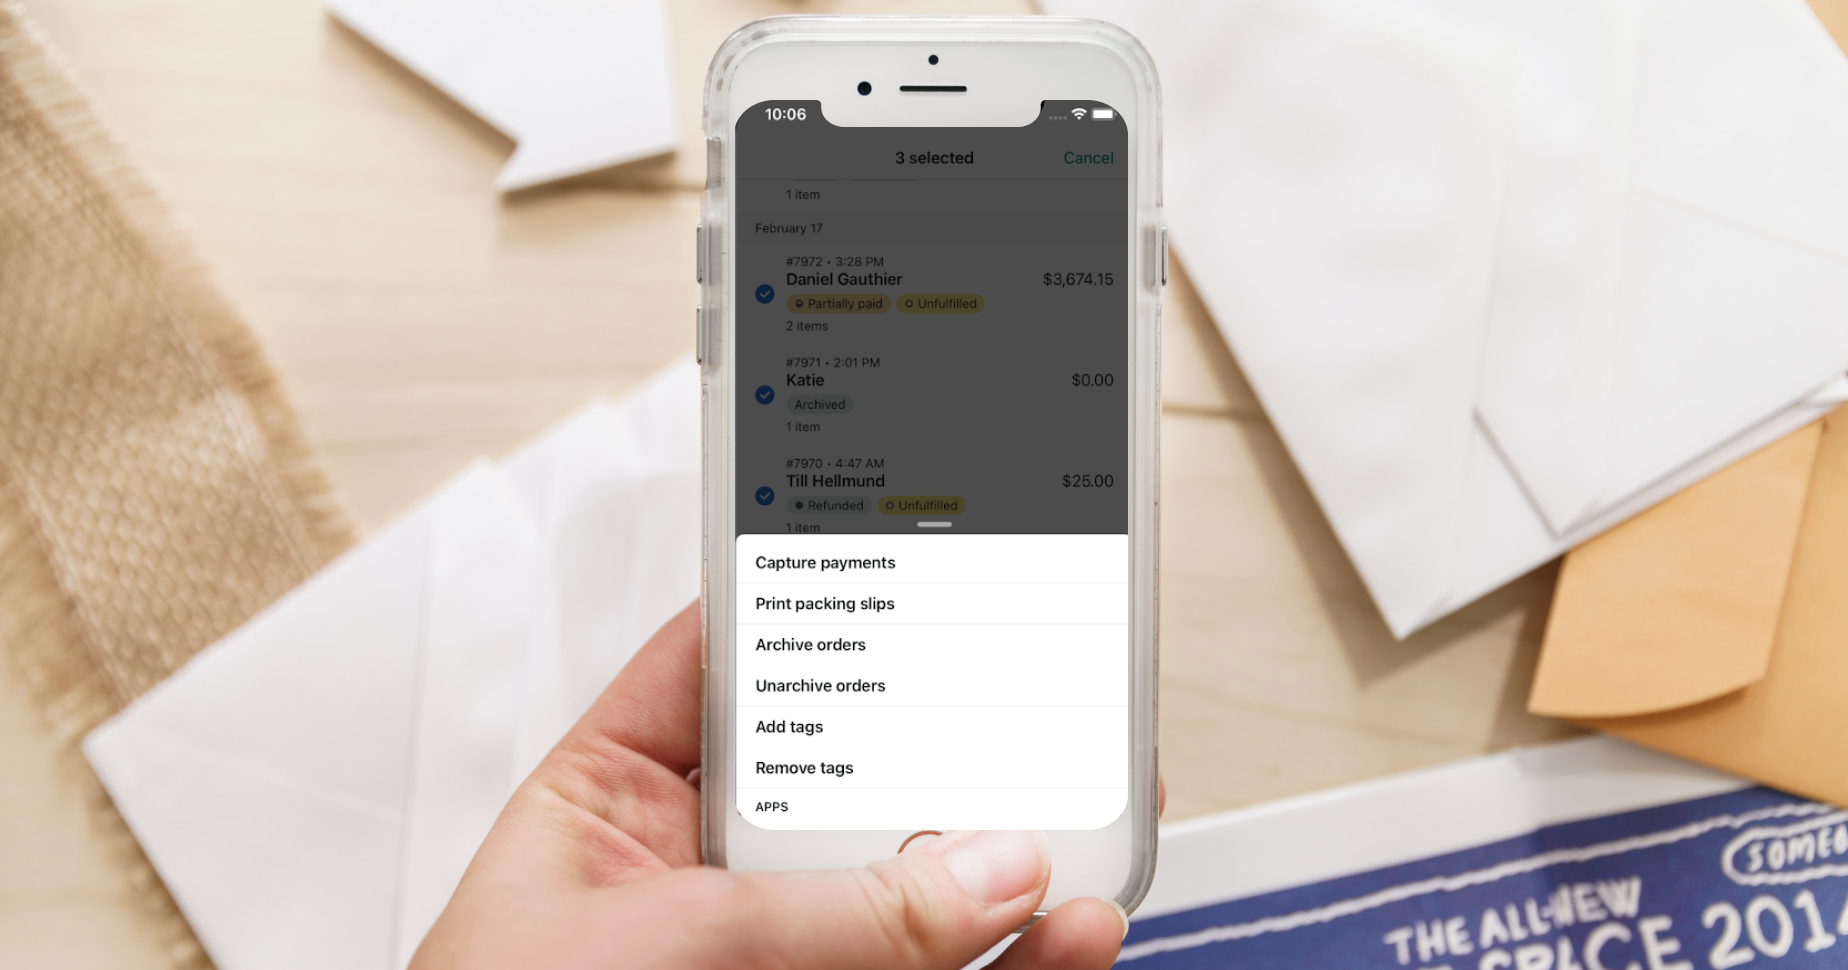 Level up Order Management and Fulfillment With Mobile